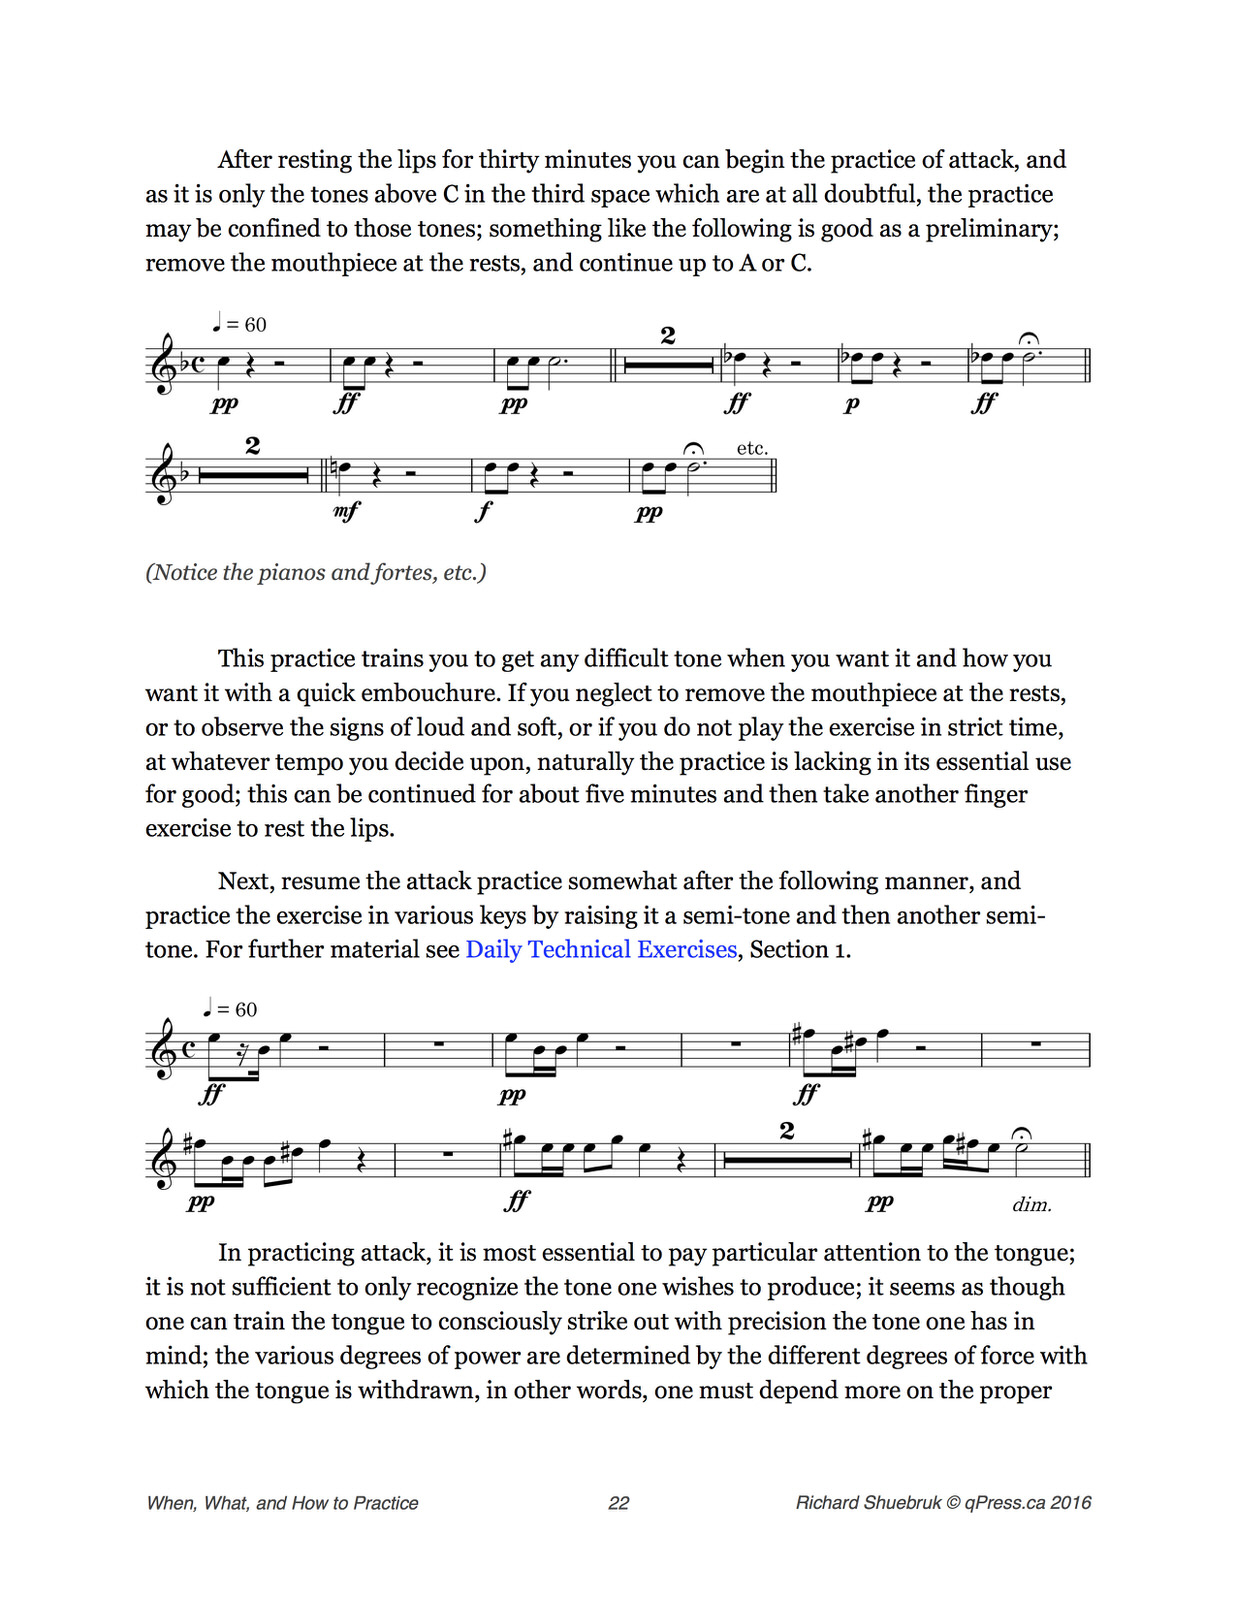 """Shuebruk, """"The Cornet Player's Guide"""" or """"When, What, and How to Practice"""""""